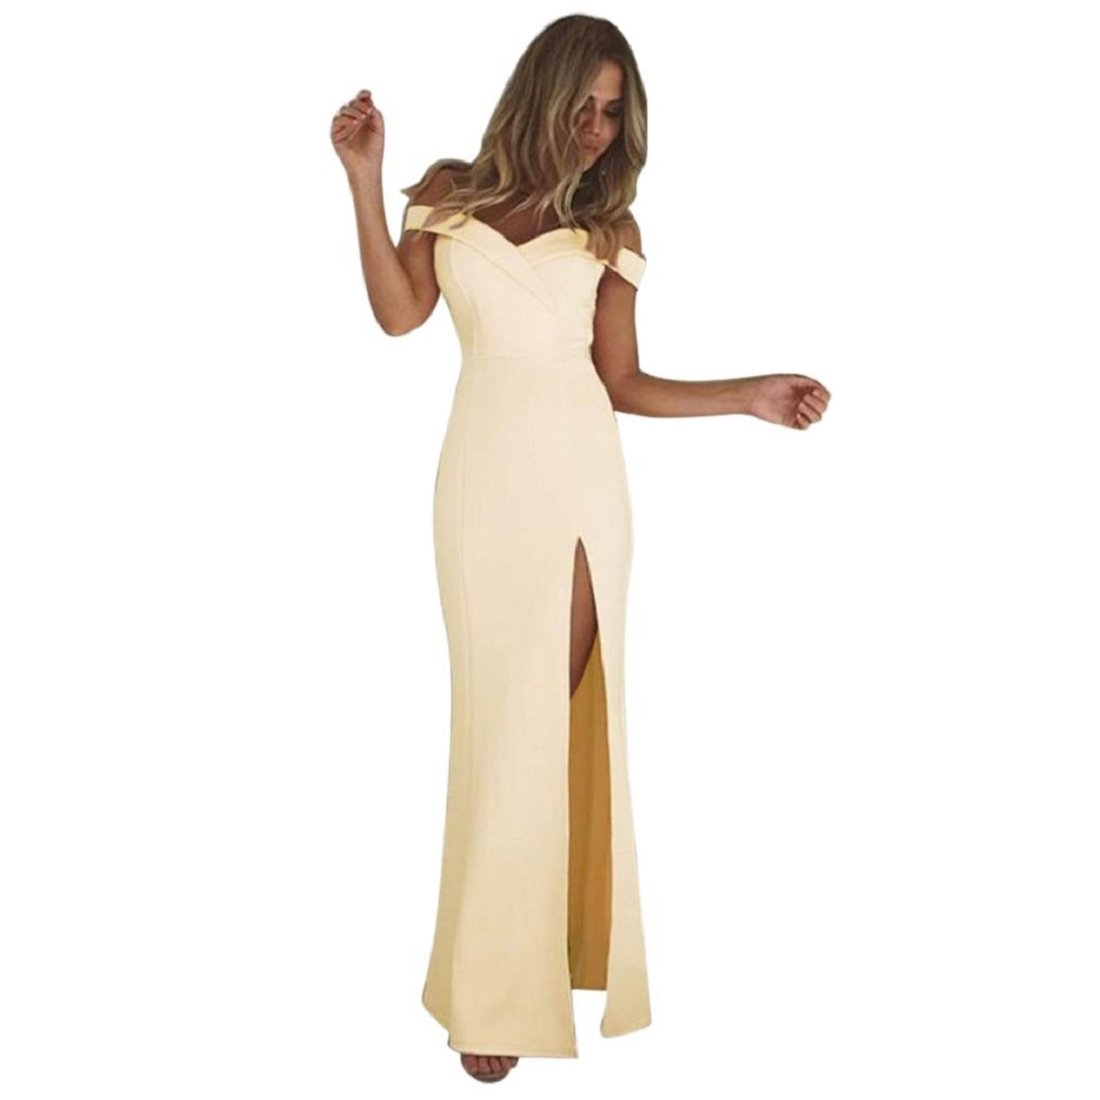 GONKOMA Women's Formal Prom Ball Gown Evening Party Bodycon Long Maxi Dress XWJ520